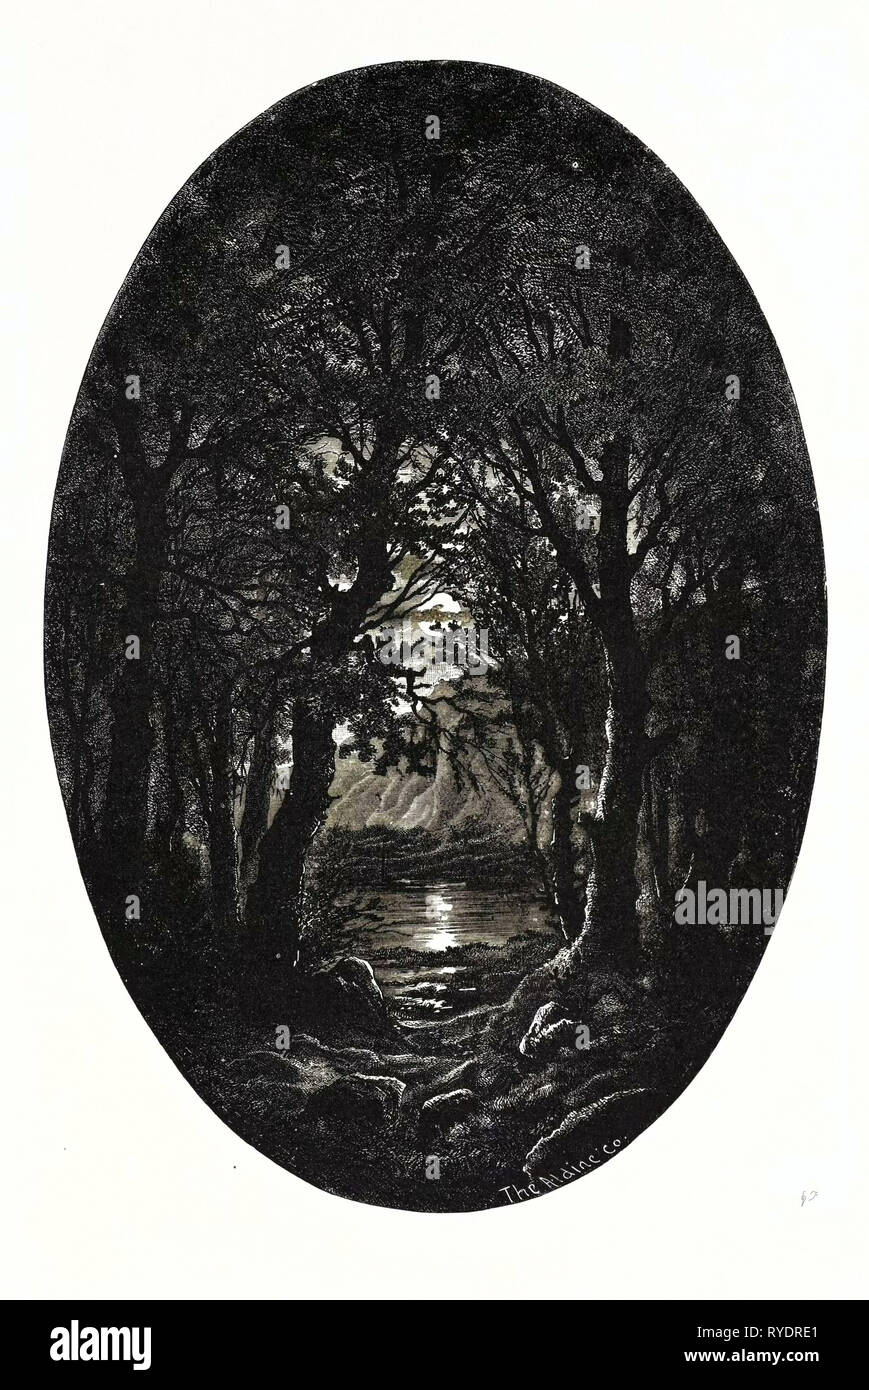 Under the Silver Full-Moonlight Shimmereth White the Lake Seen Through the Natural Arches that the Crossing Branches Make. Weird is the Quiet Beauty Enwrapping the Scene Like a Spell Where Alike the Naiad and Dryad Should Be Happy and Proud to Dwell Stock Photo